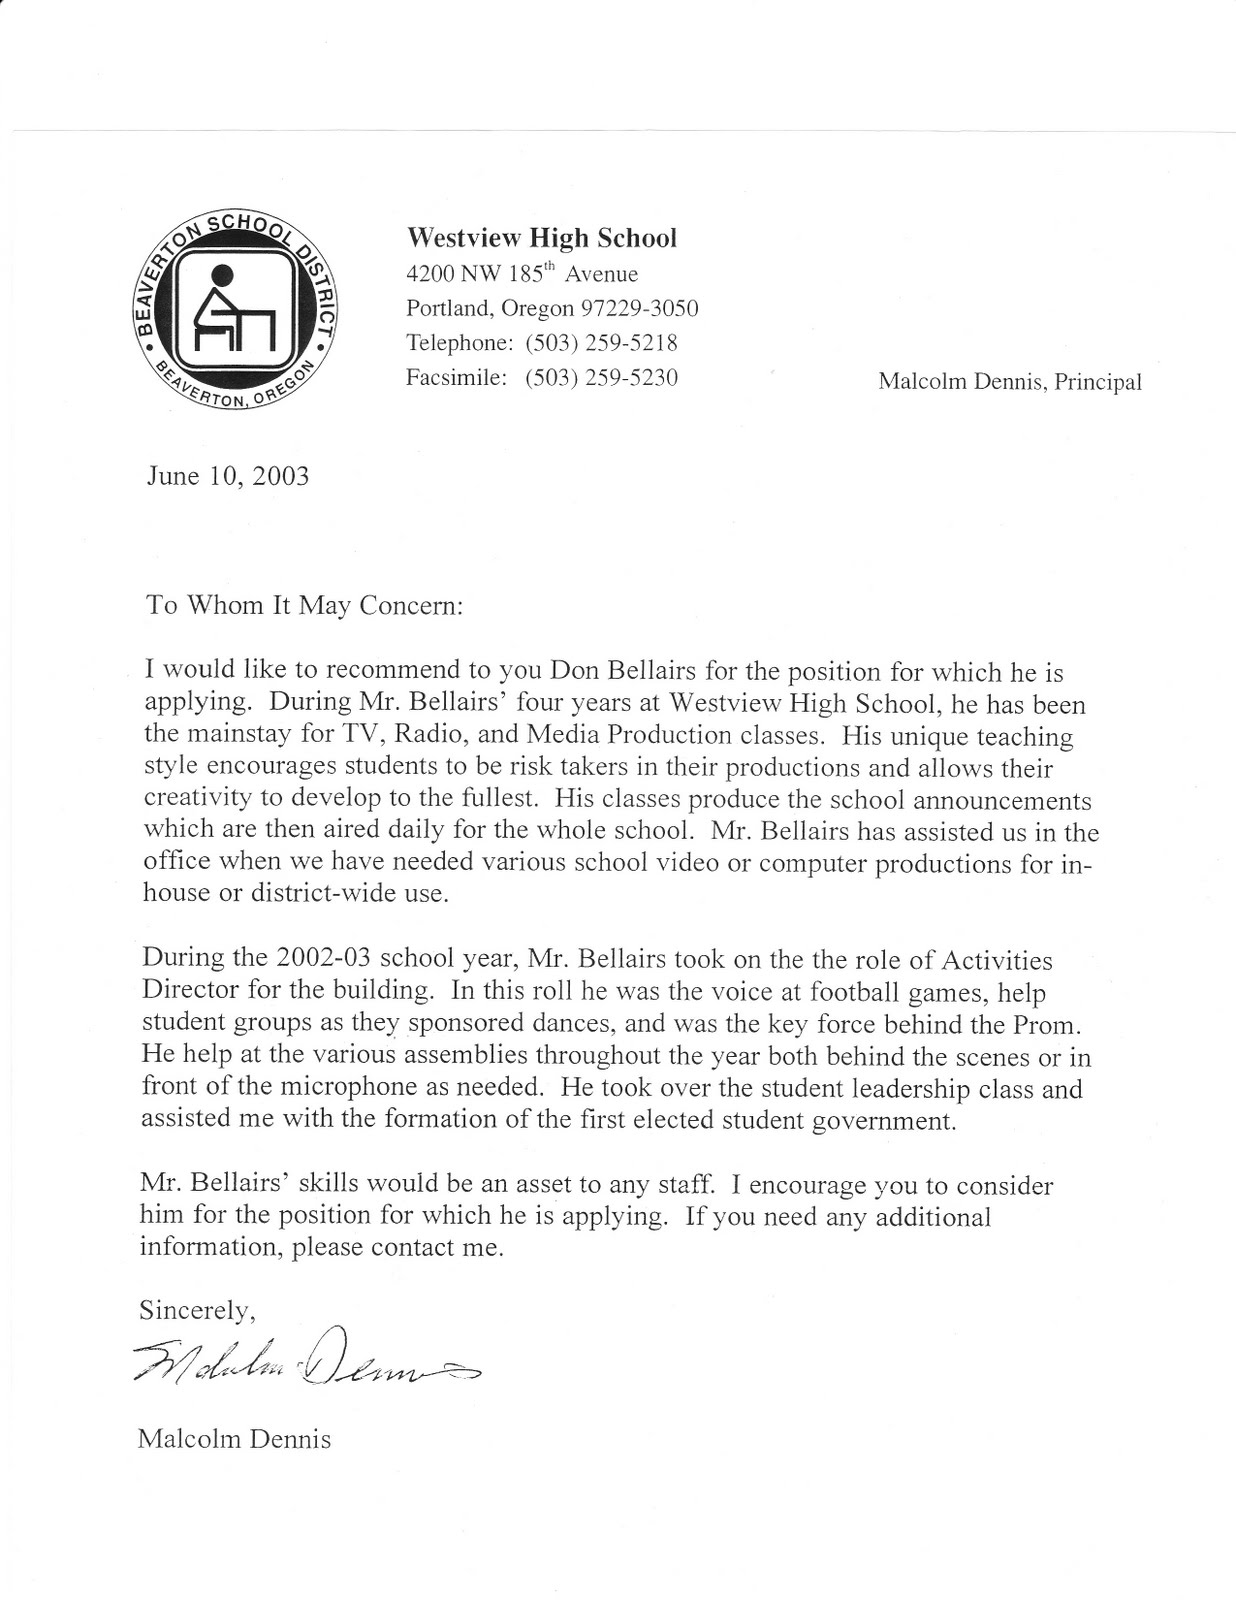 teacher letter of recommendation for college application Many colleges require letters of recommendation from teachers as part of the college application colleges recognize that your teachers spend significant time with you and, therefore, trust them to provide a candid picture of who you are as a scholar and a person.